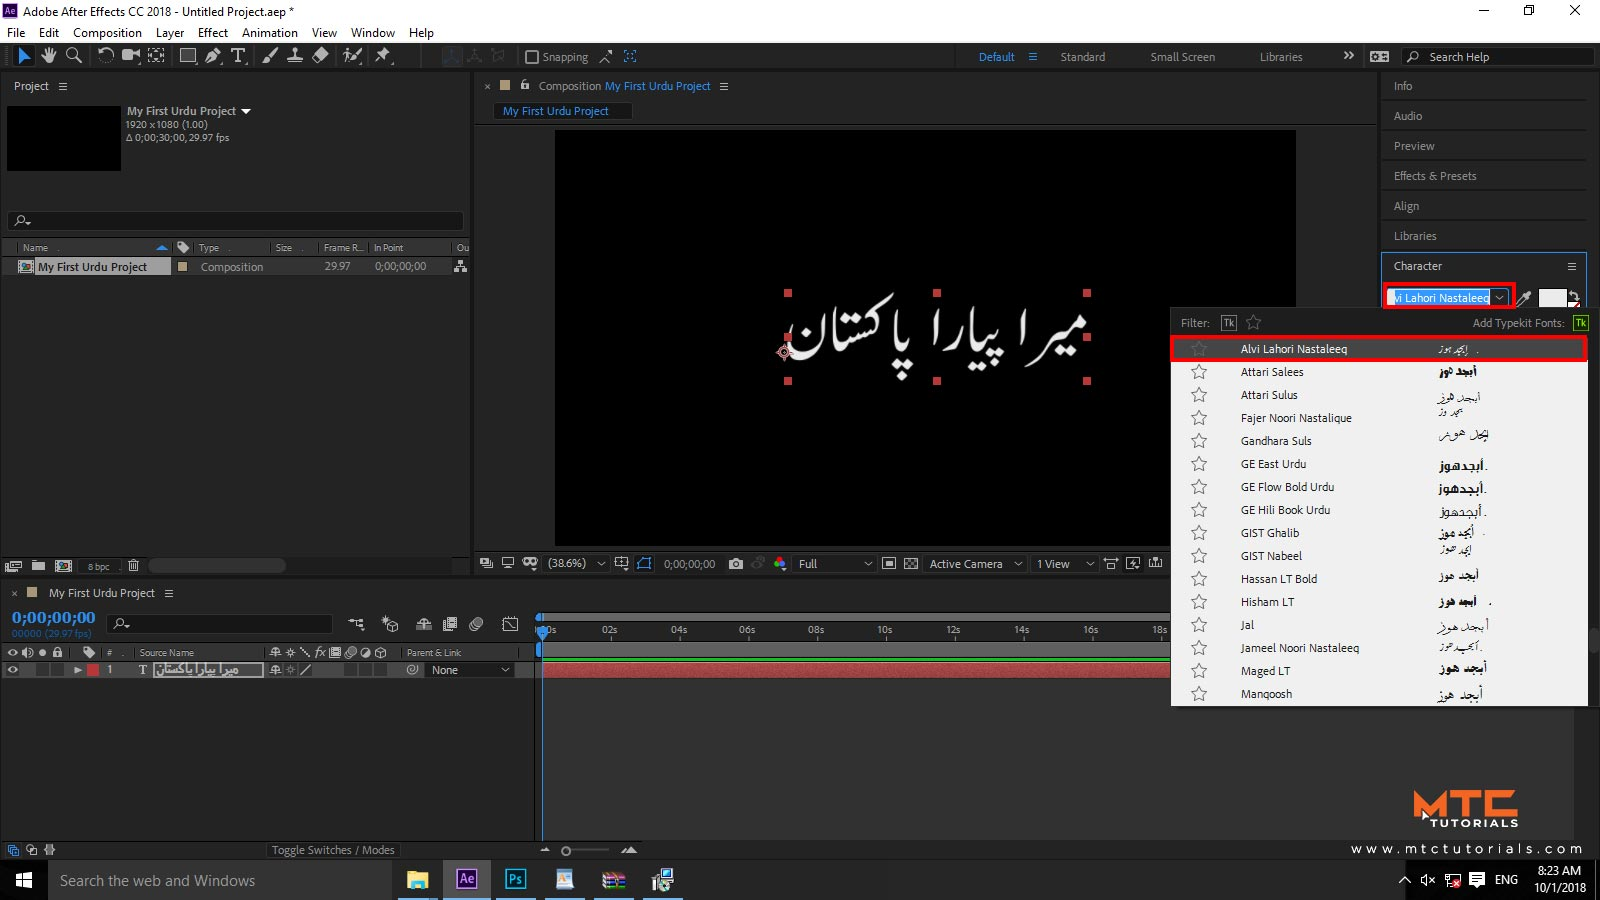 Changing urdu fonts in adobe after effects cc 2018